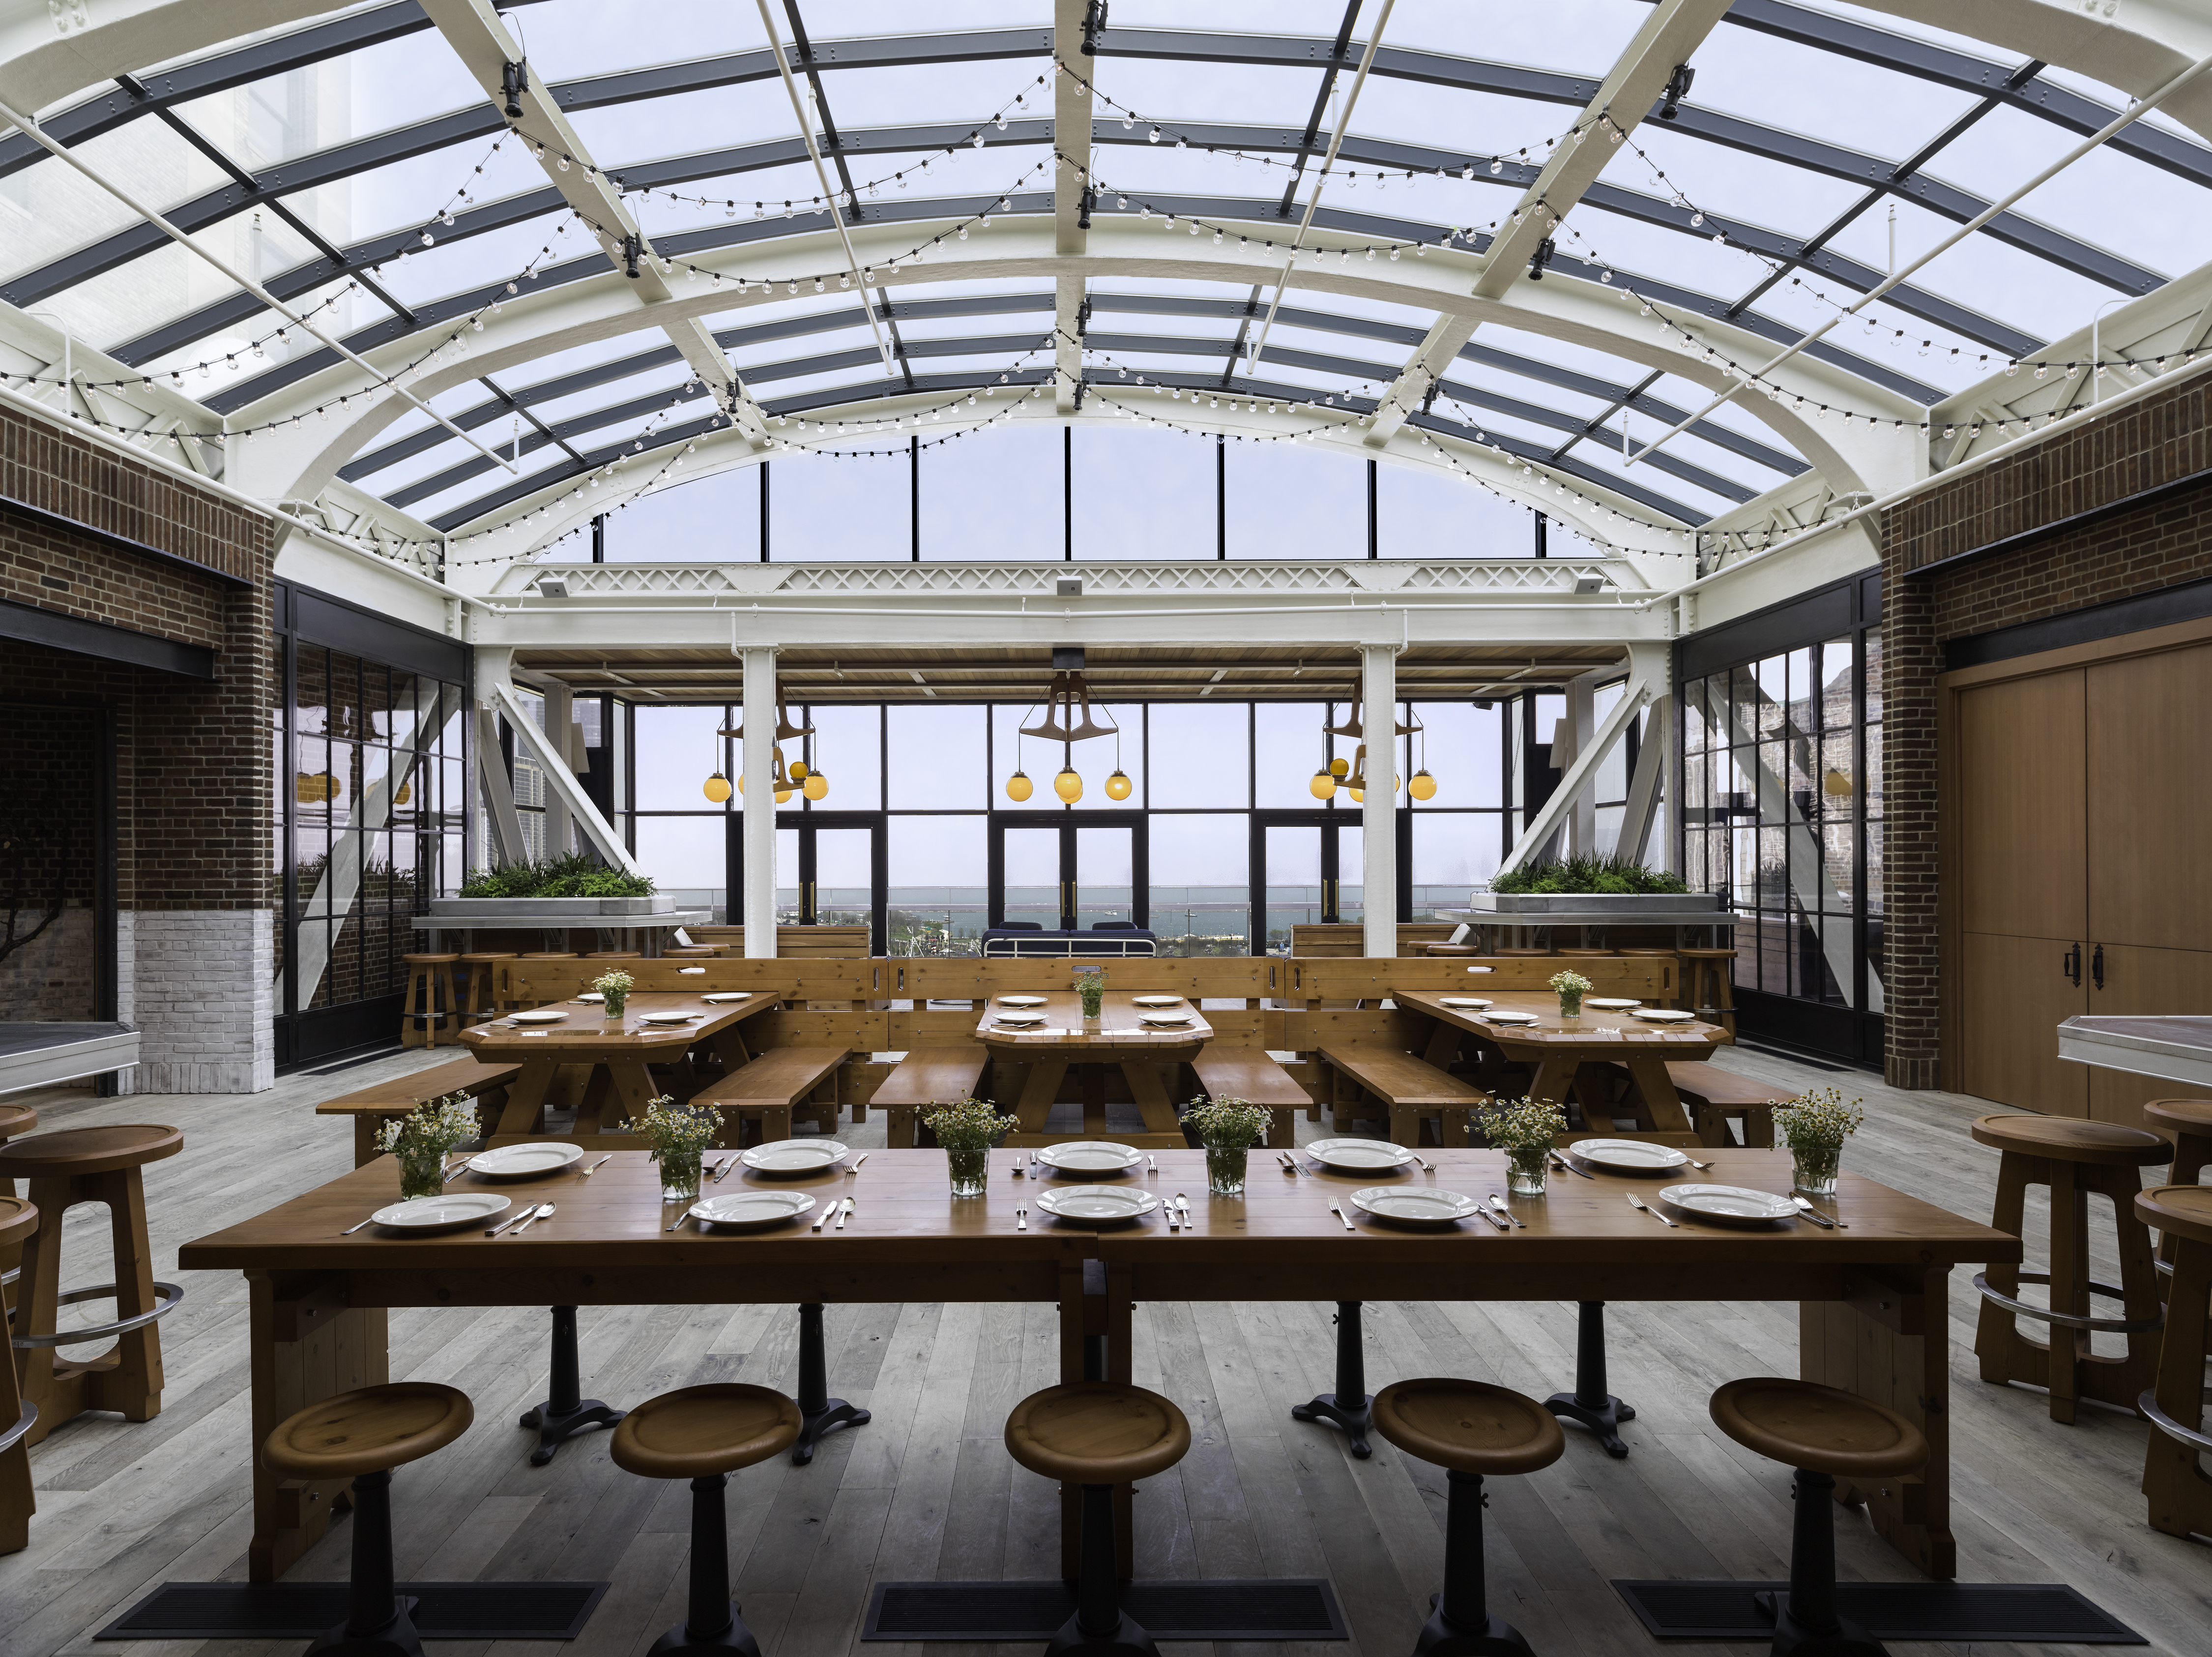 Cindy's Private Dinning Space - Chicago Athletic Association Hotel